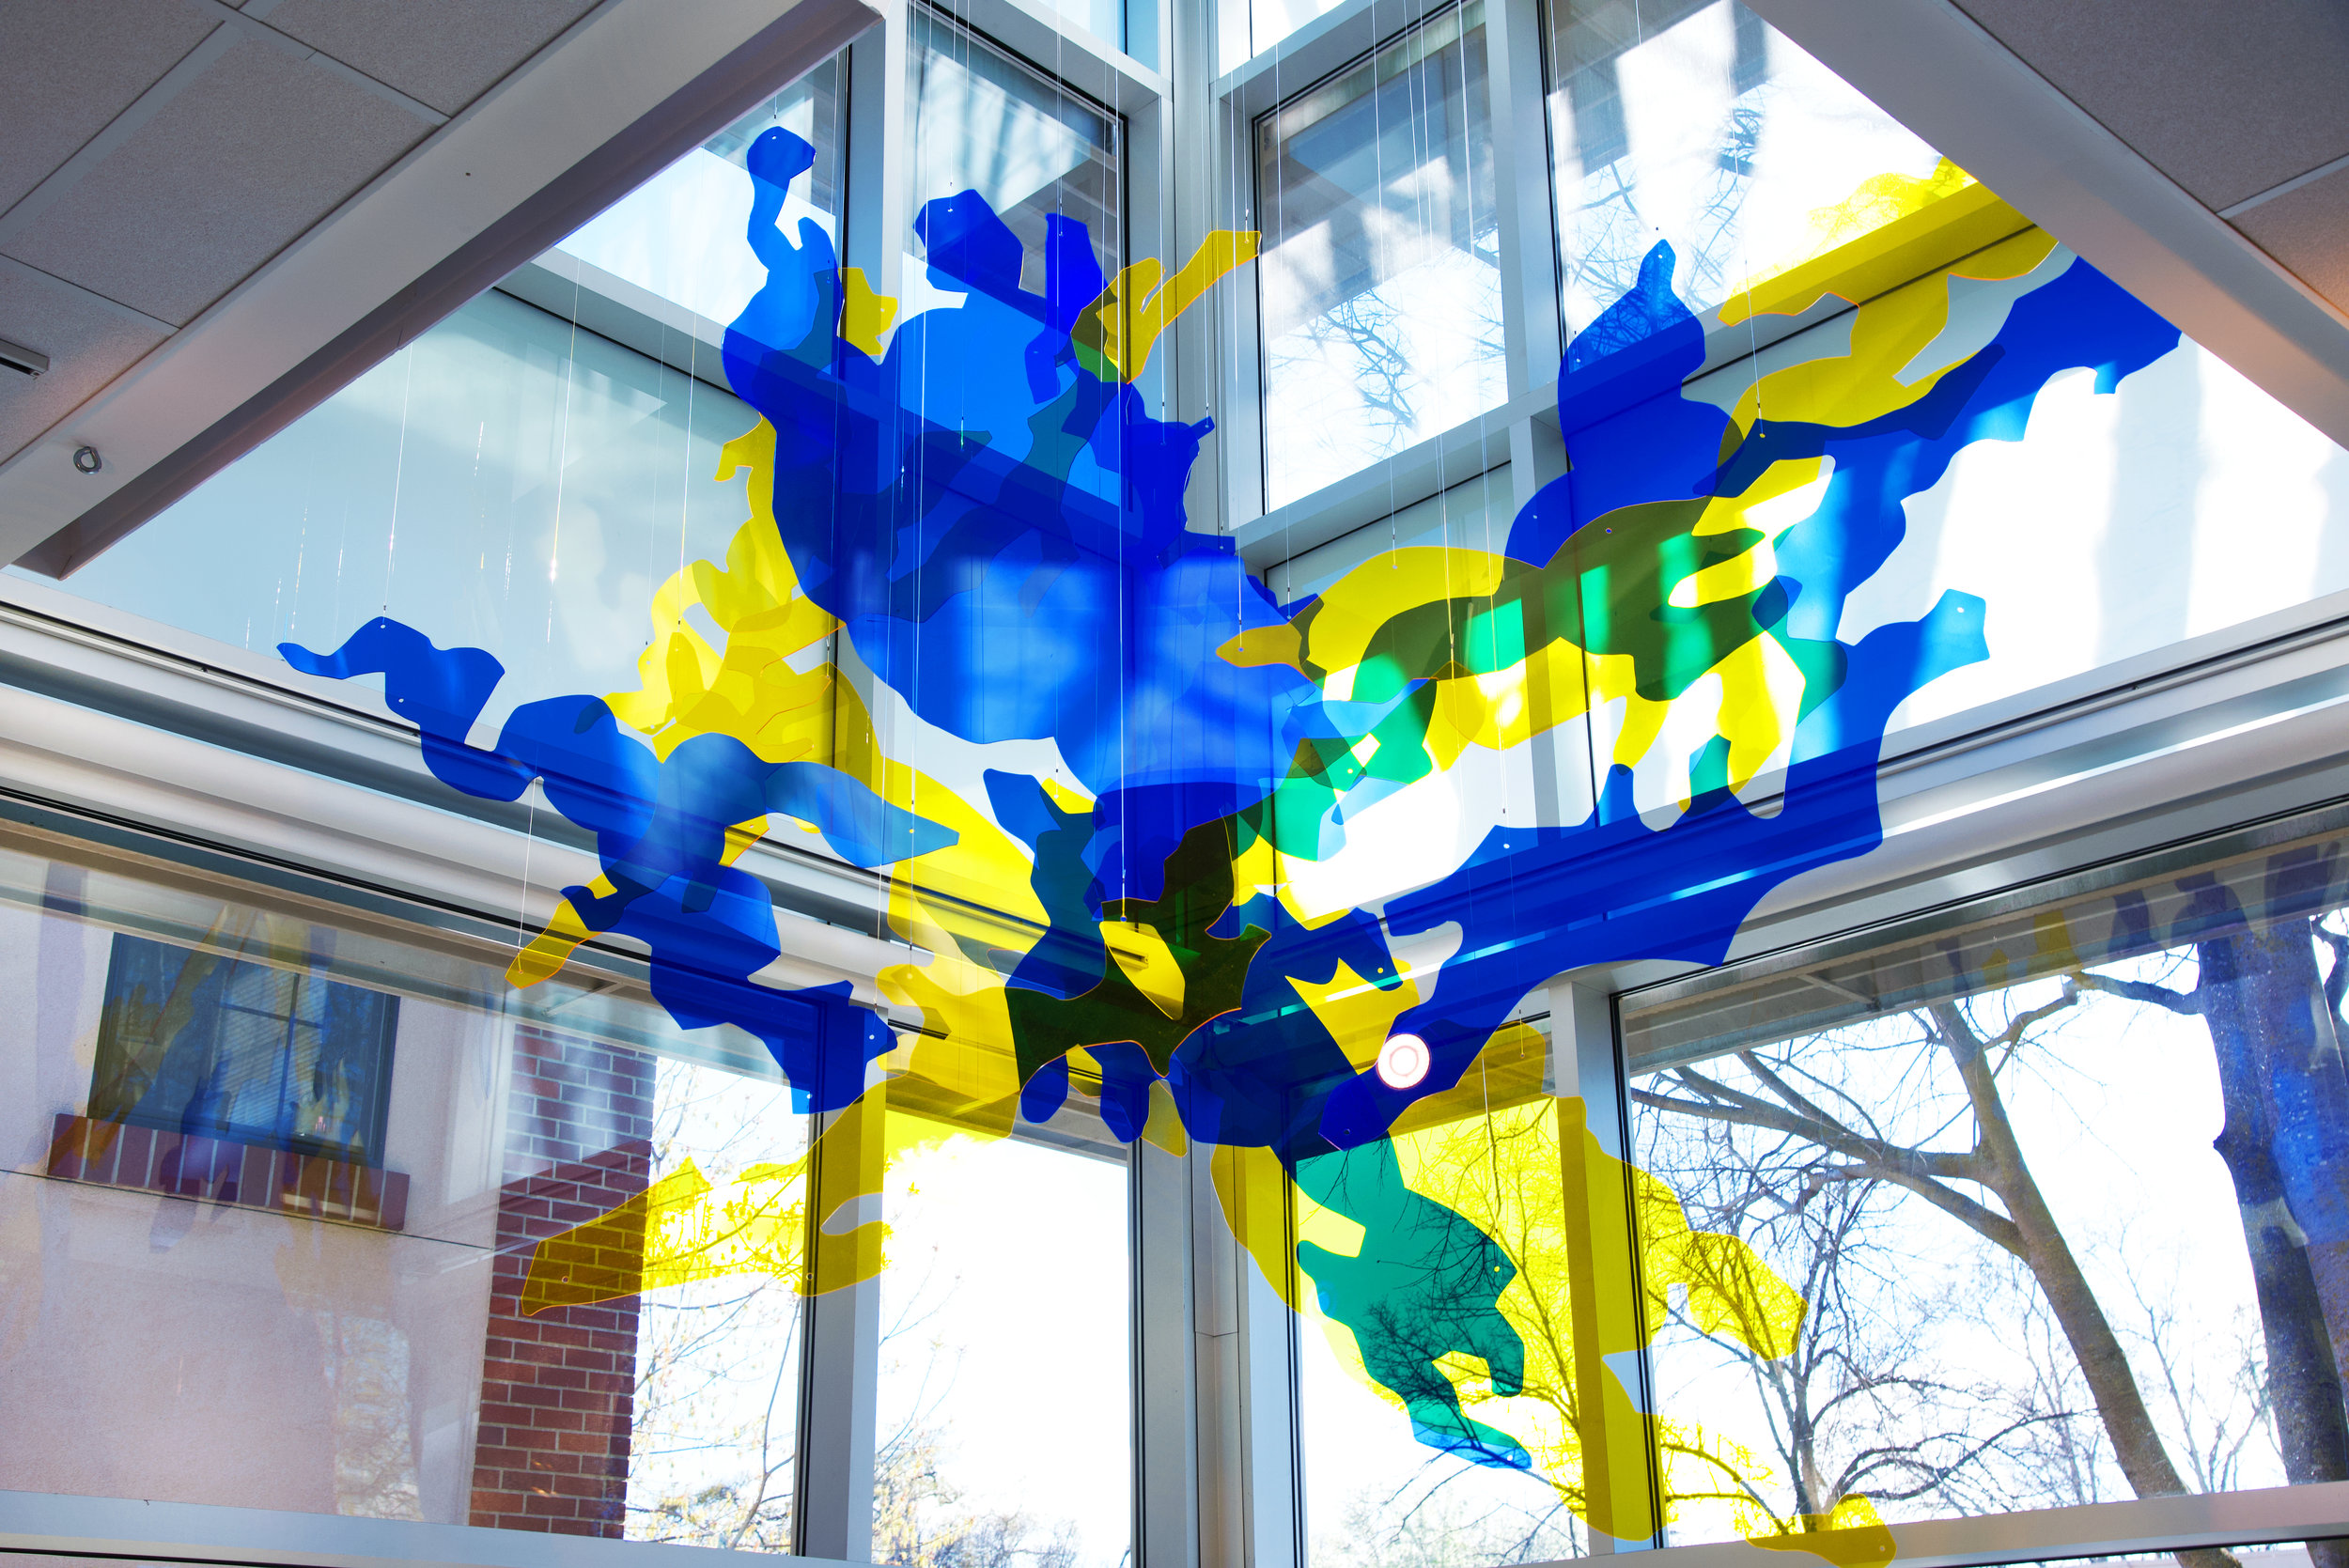 Forming Light , 10 x 10 x 10 ft., Blue and yellow custom laser-cut acrylic pieces, nylon wire, 2018